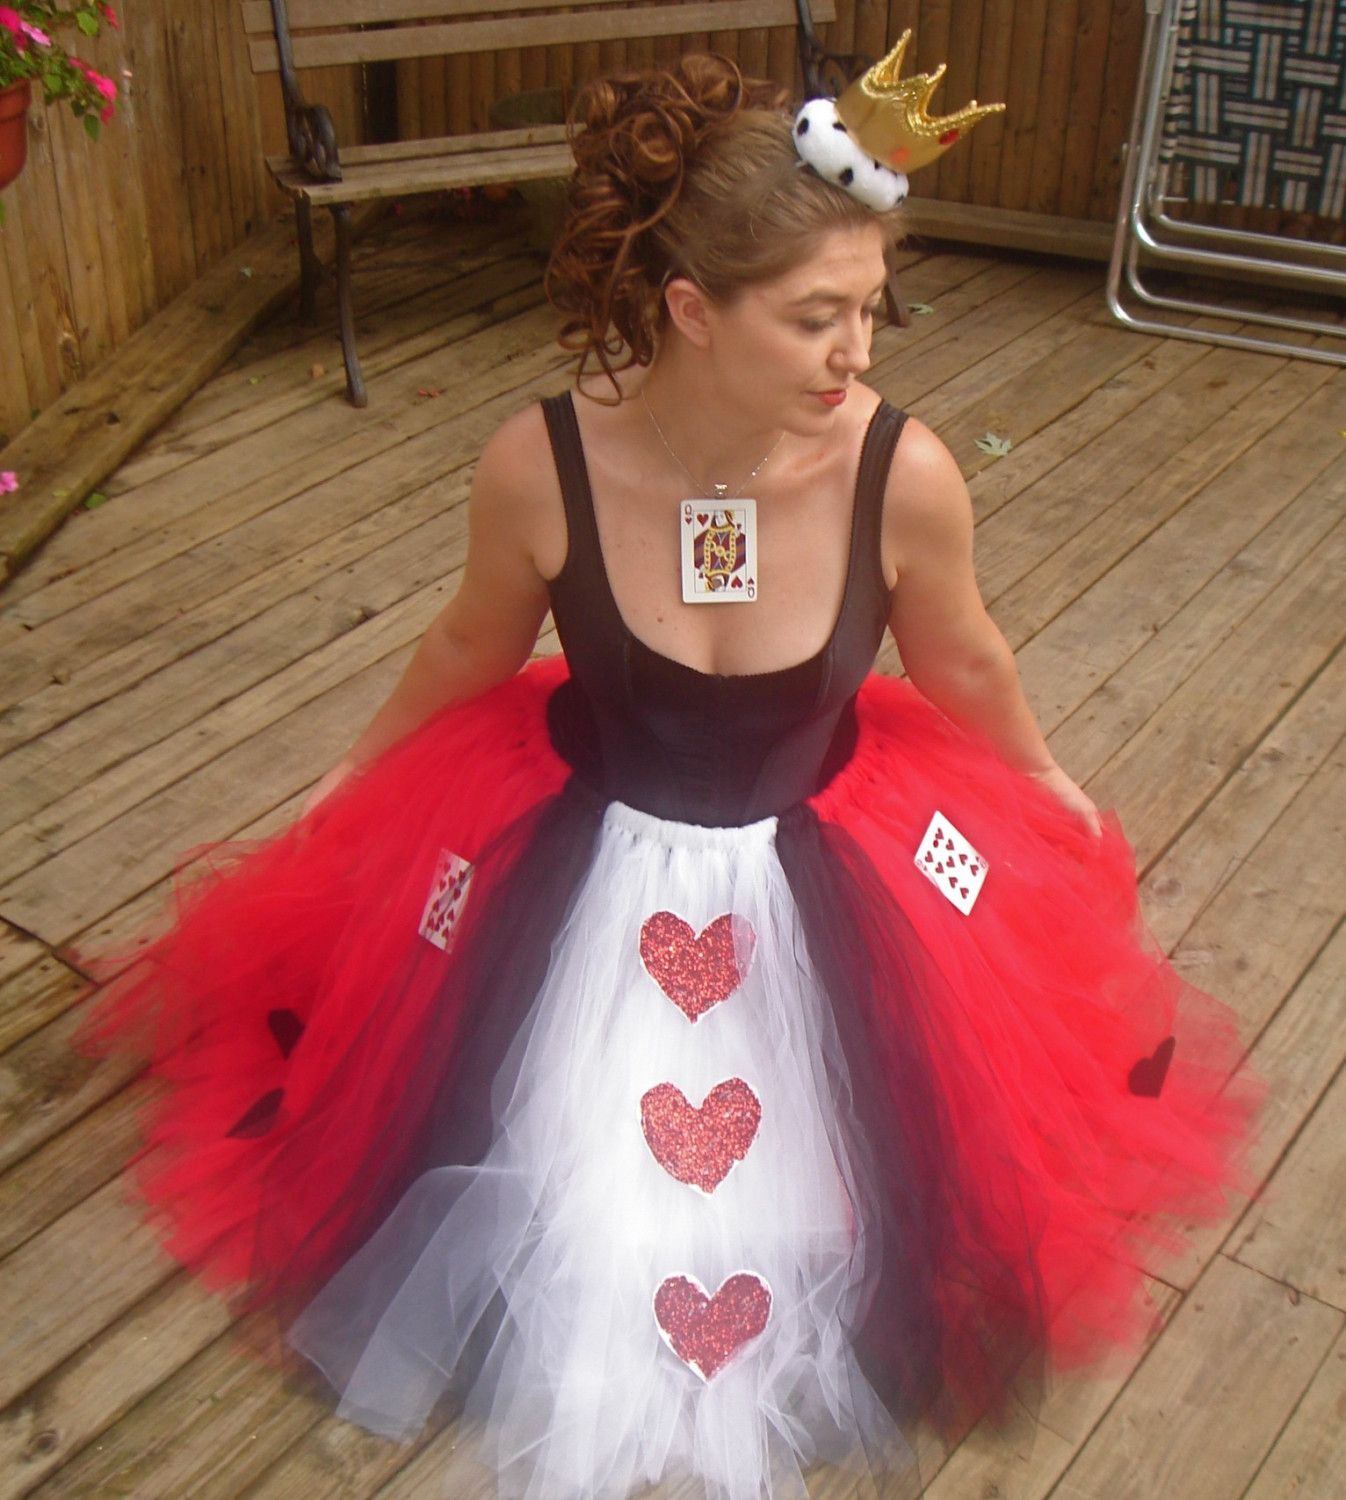 Queen of Hearts Adult Boutique Tutu Skirt Costume Skirts